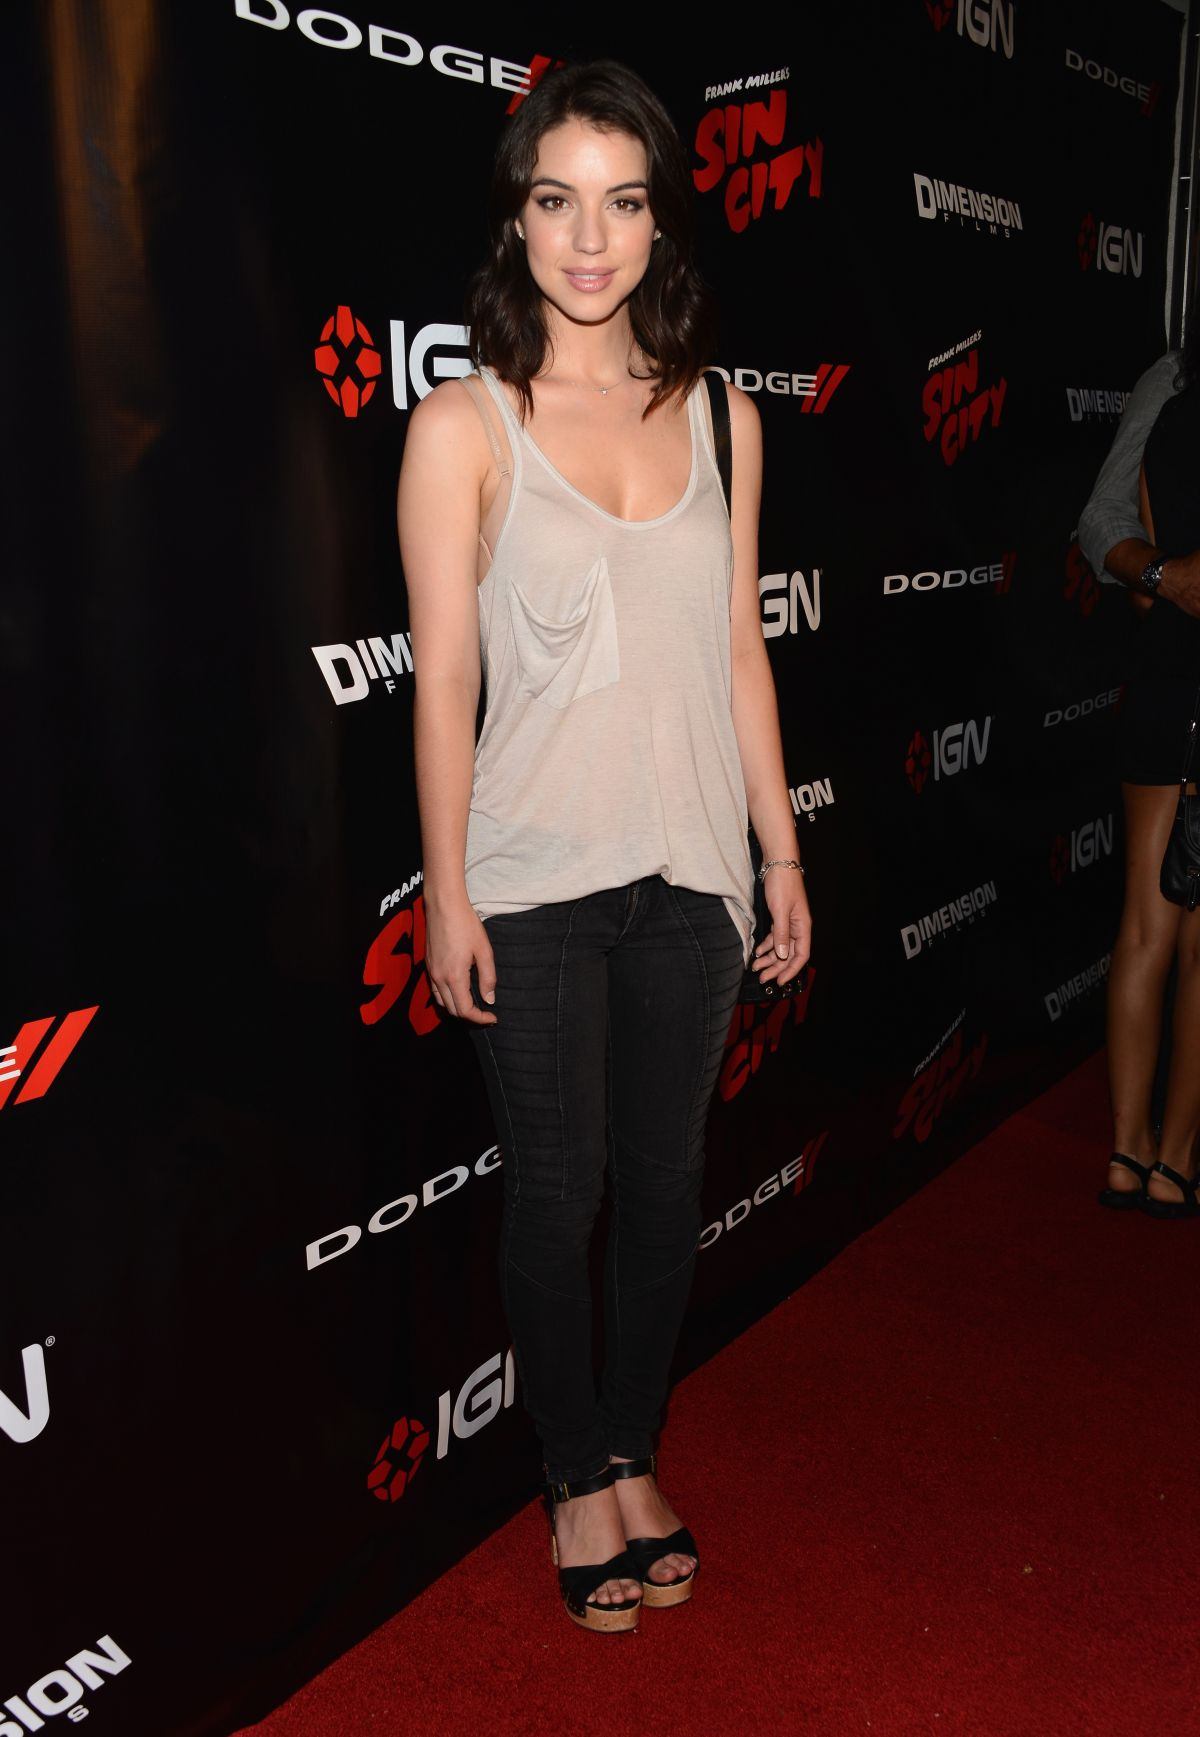 Adelaide Kane At Ign Presentation At Comic Con 2014 In San